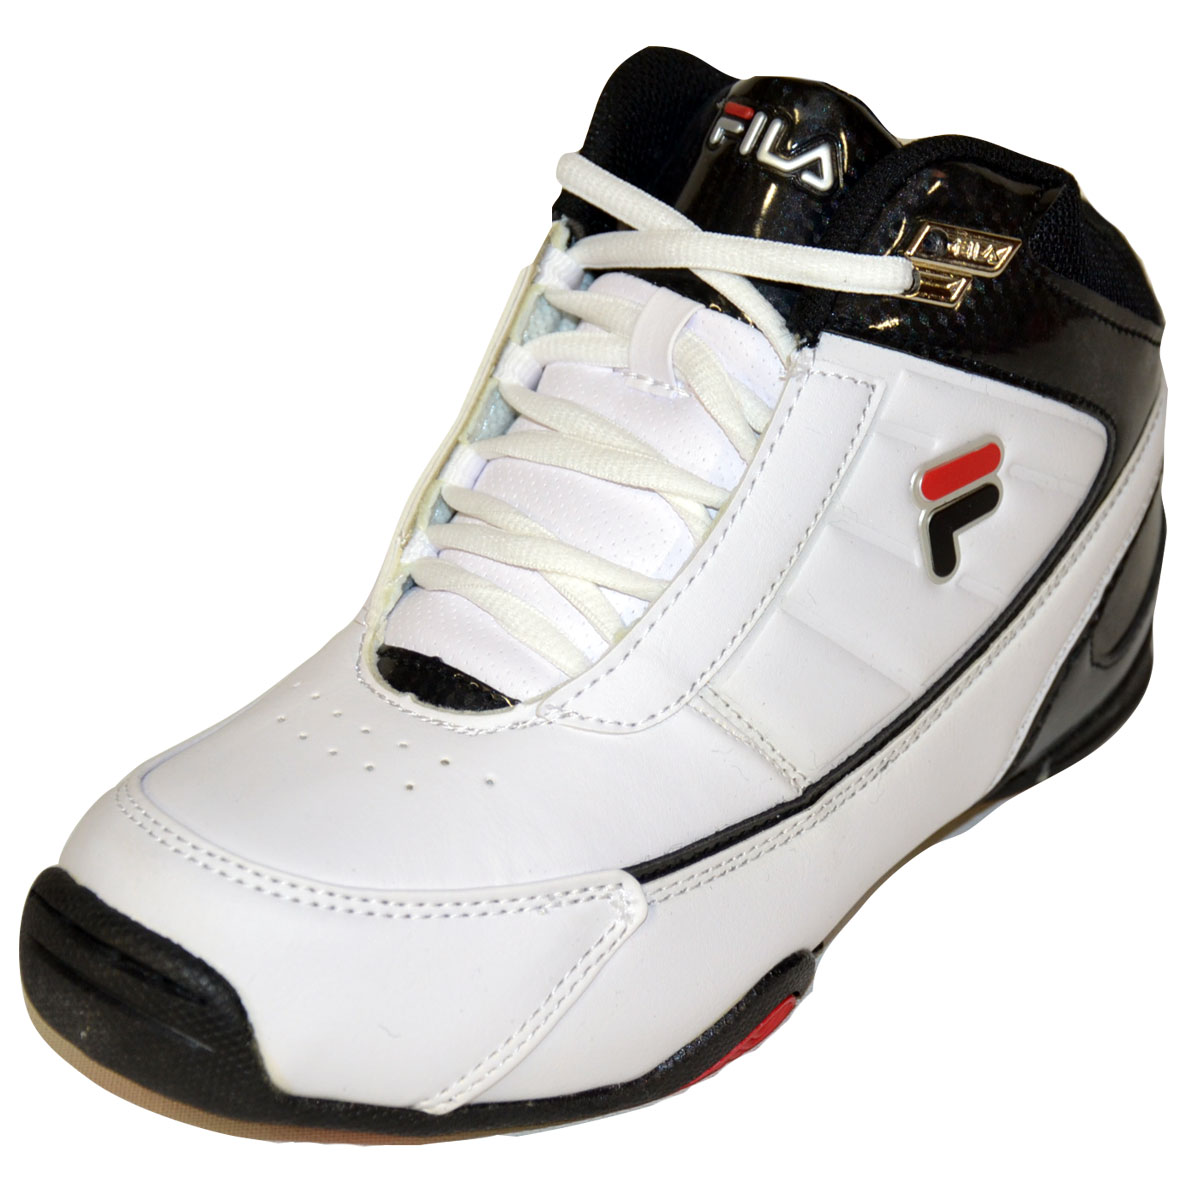 Fila Change The Game Big Kids Youth Basketball Shoes Mycraze